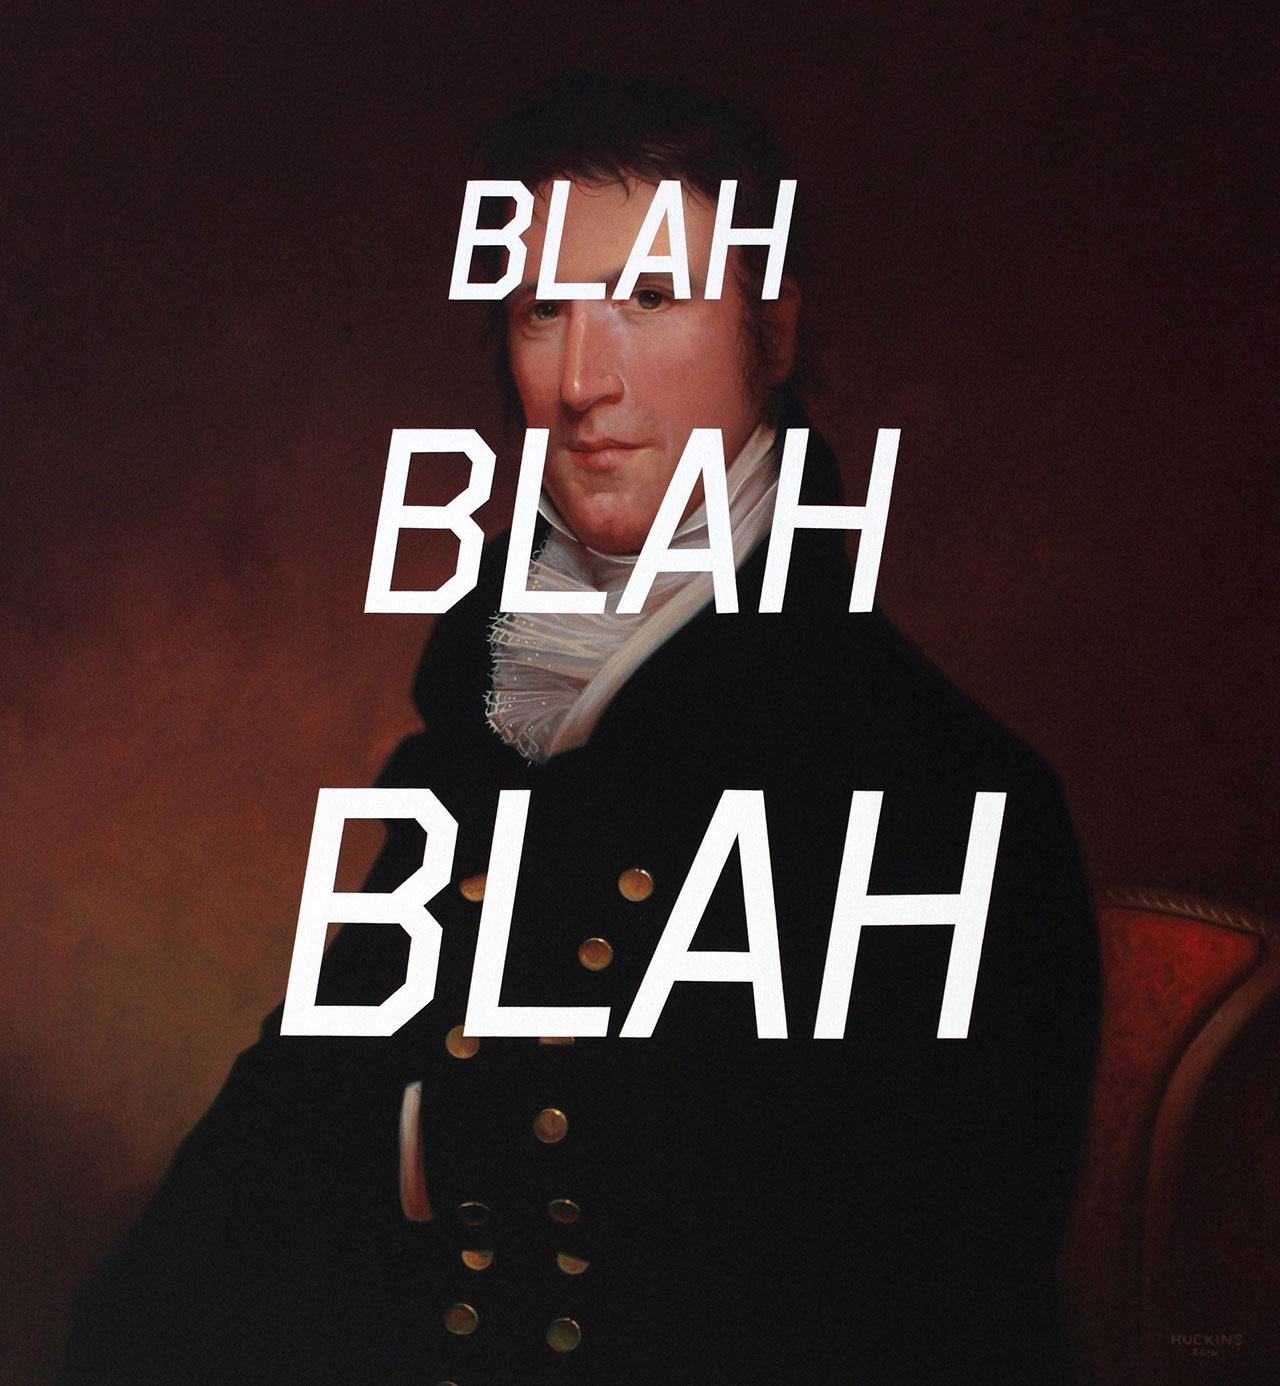 Shawn Huckins, Elliot Tole Lane: Blah Blah Blah, acrylic on canvas, 30 x 28 in (76 x 71 cm), 2016. Private collection.